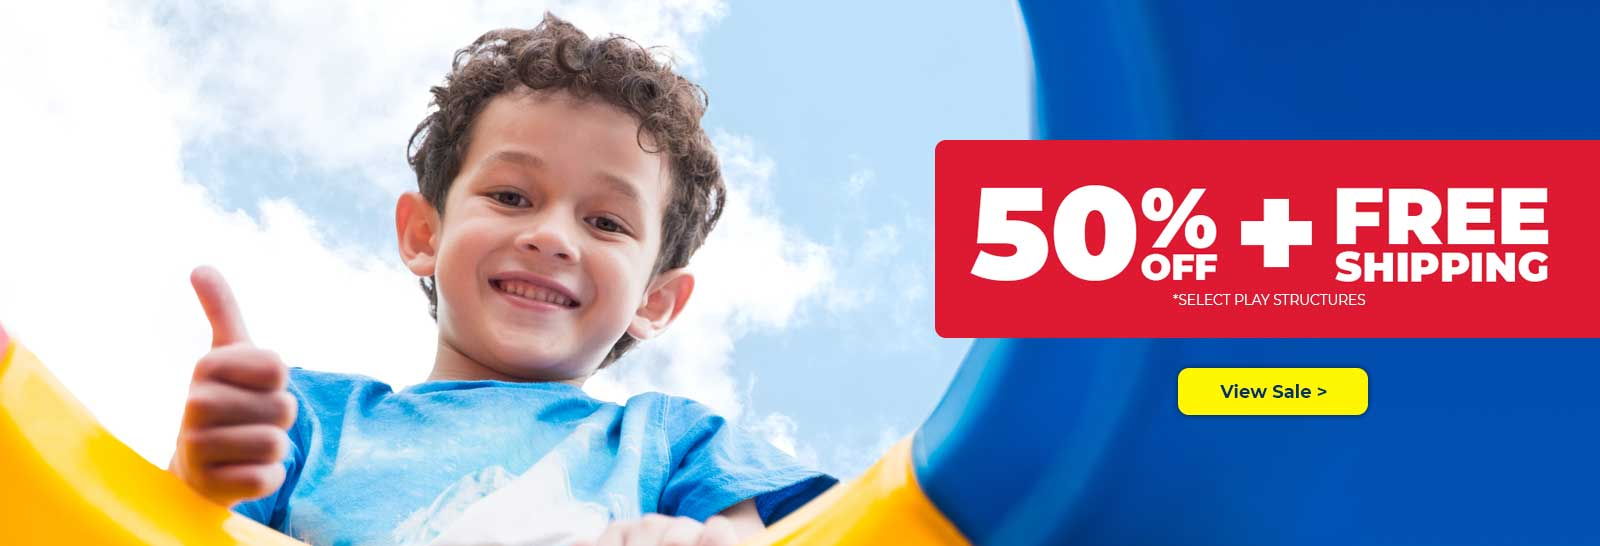 50% Off - Commercial Playground Equipment Sale